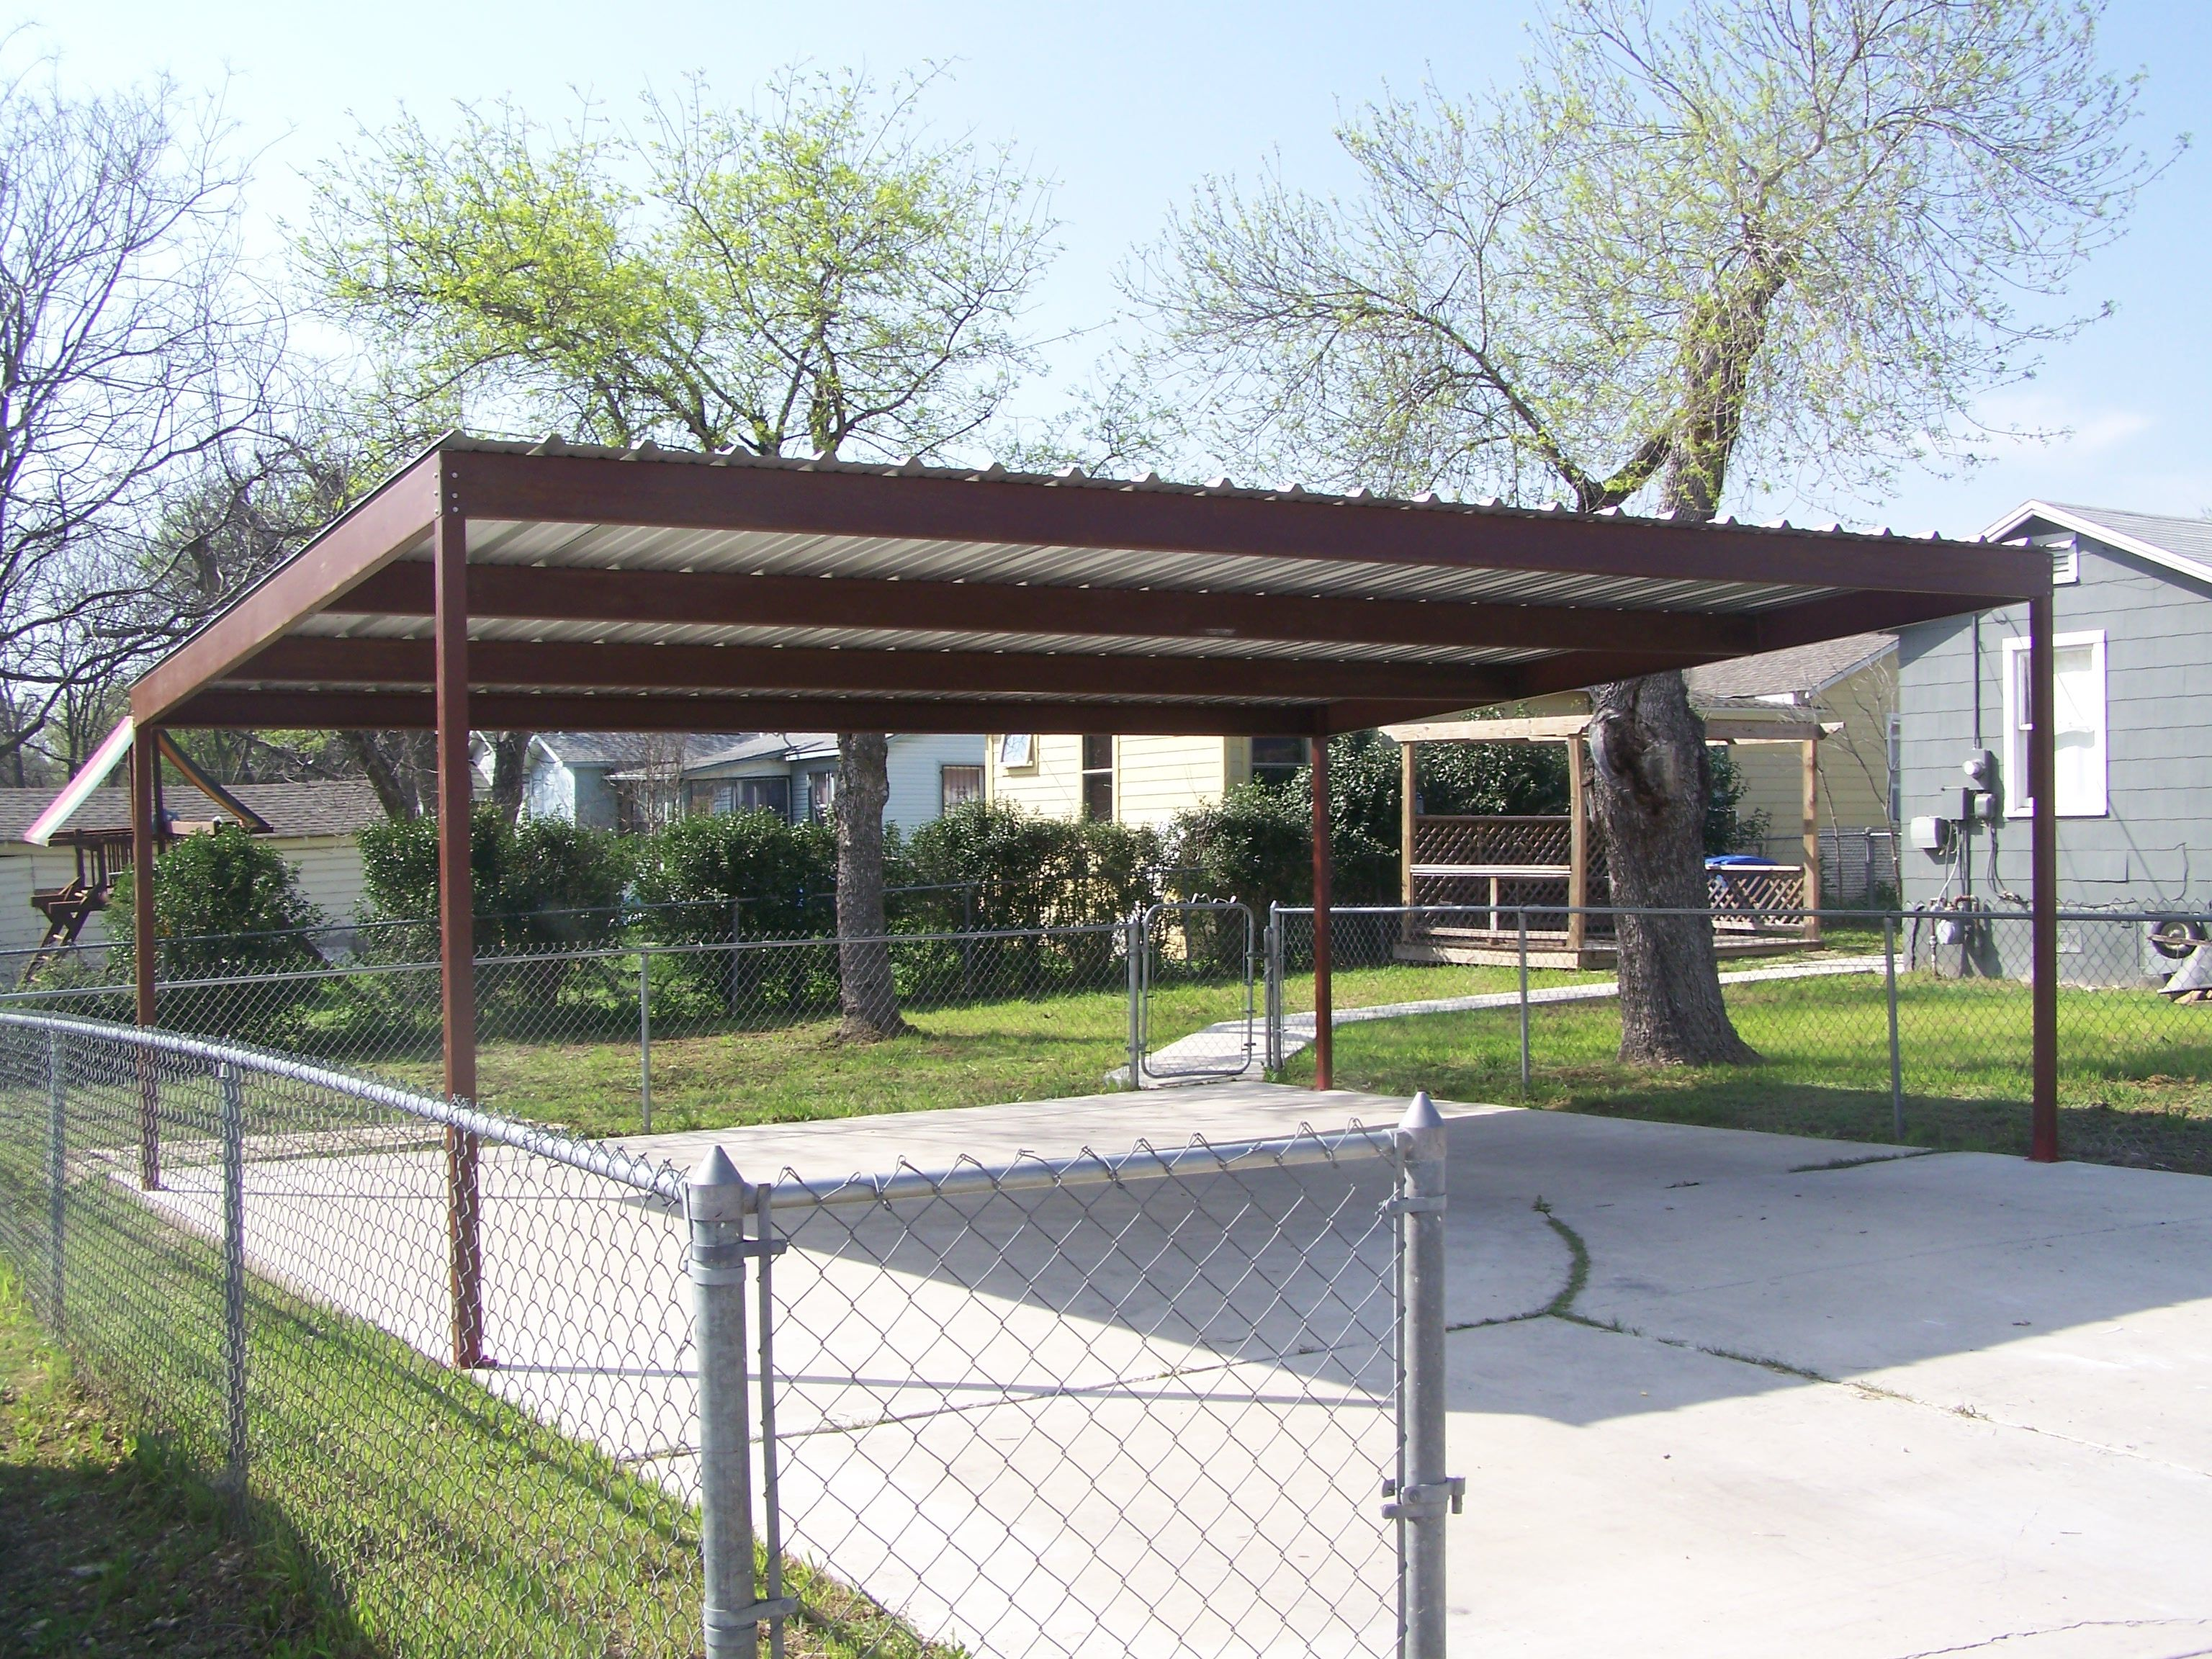 Carport Design Ideas carport design ideas by lysaght living collection Carport Designs Google Search More